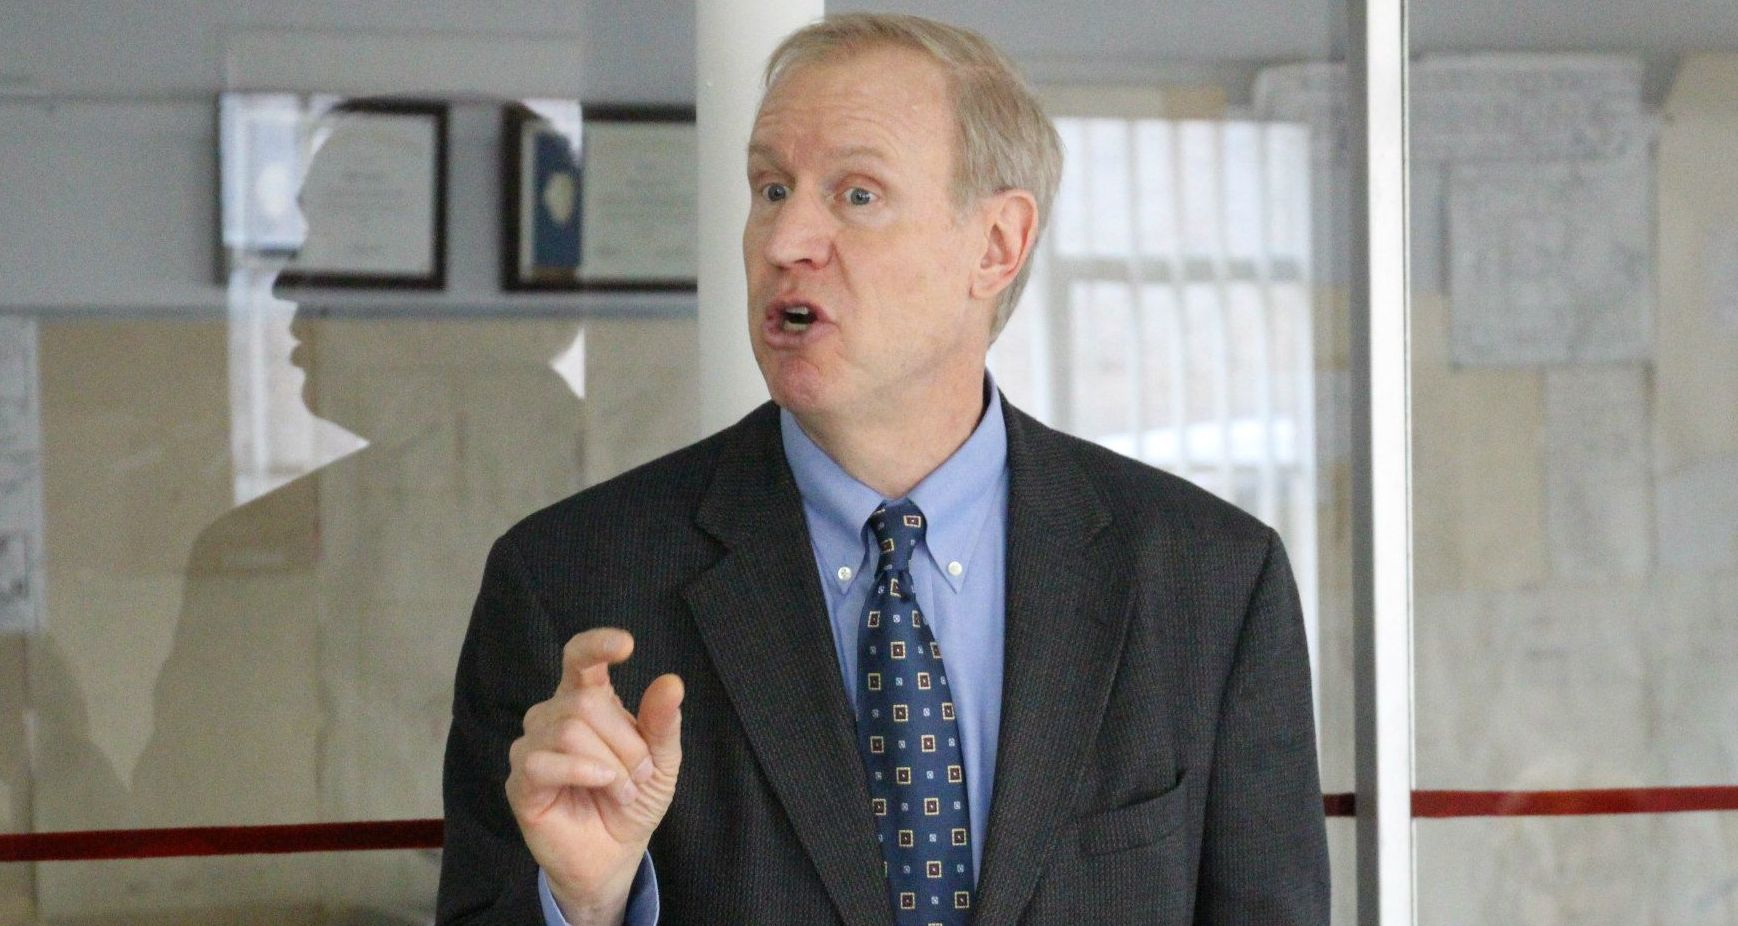 Rauner's plan for Illinois budget woes? Credit Card fraud!